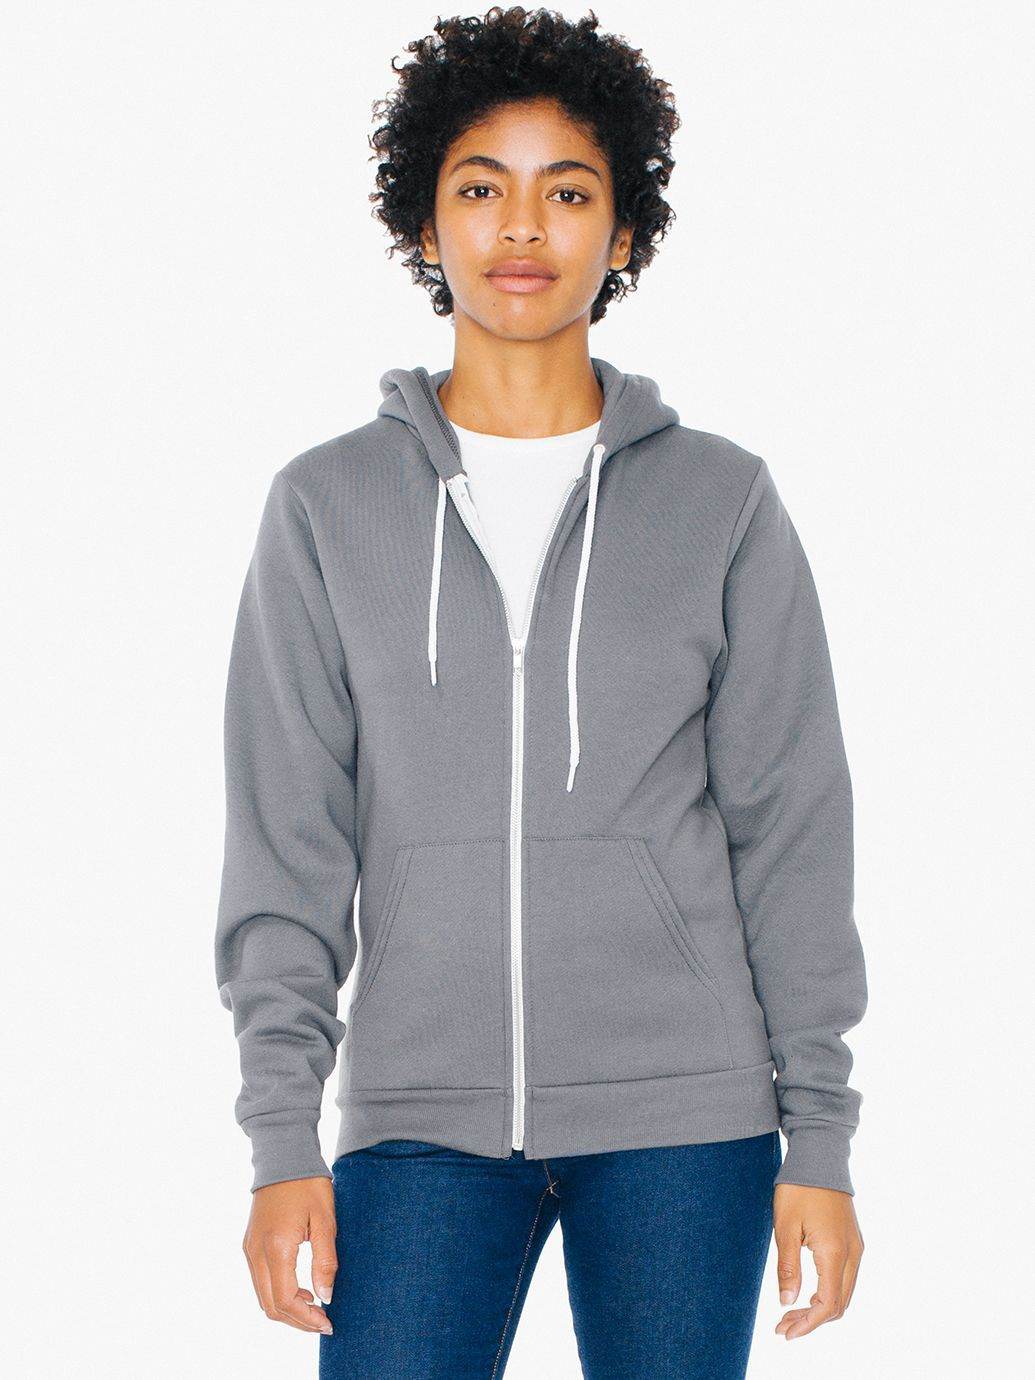 LESS INSTAGRAM MORE MARTHA GRAHAM Sweatshirt - Cocus Pocus